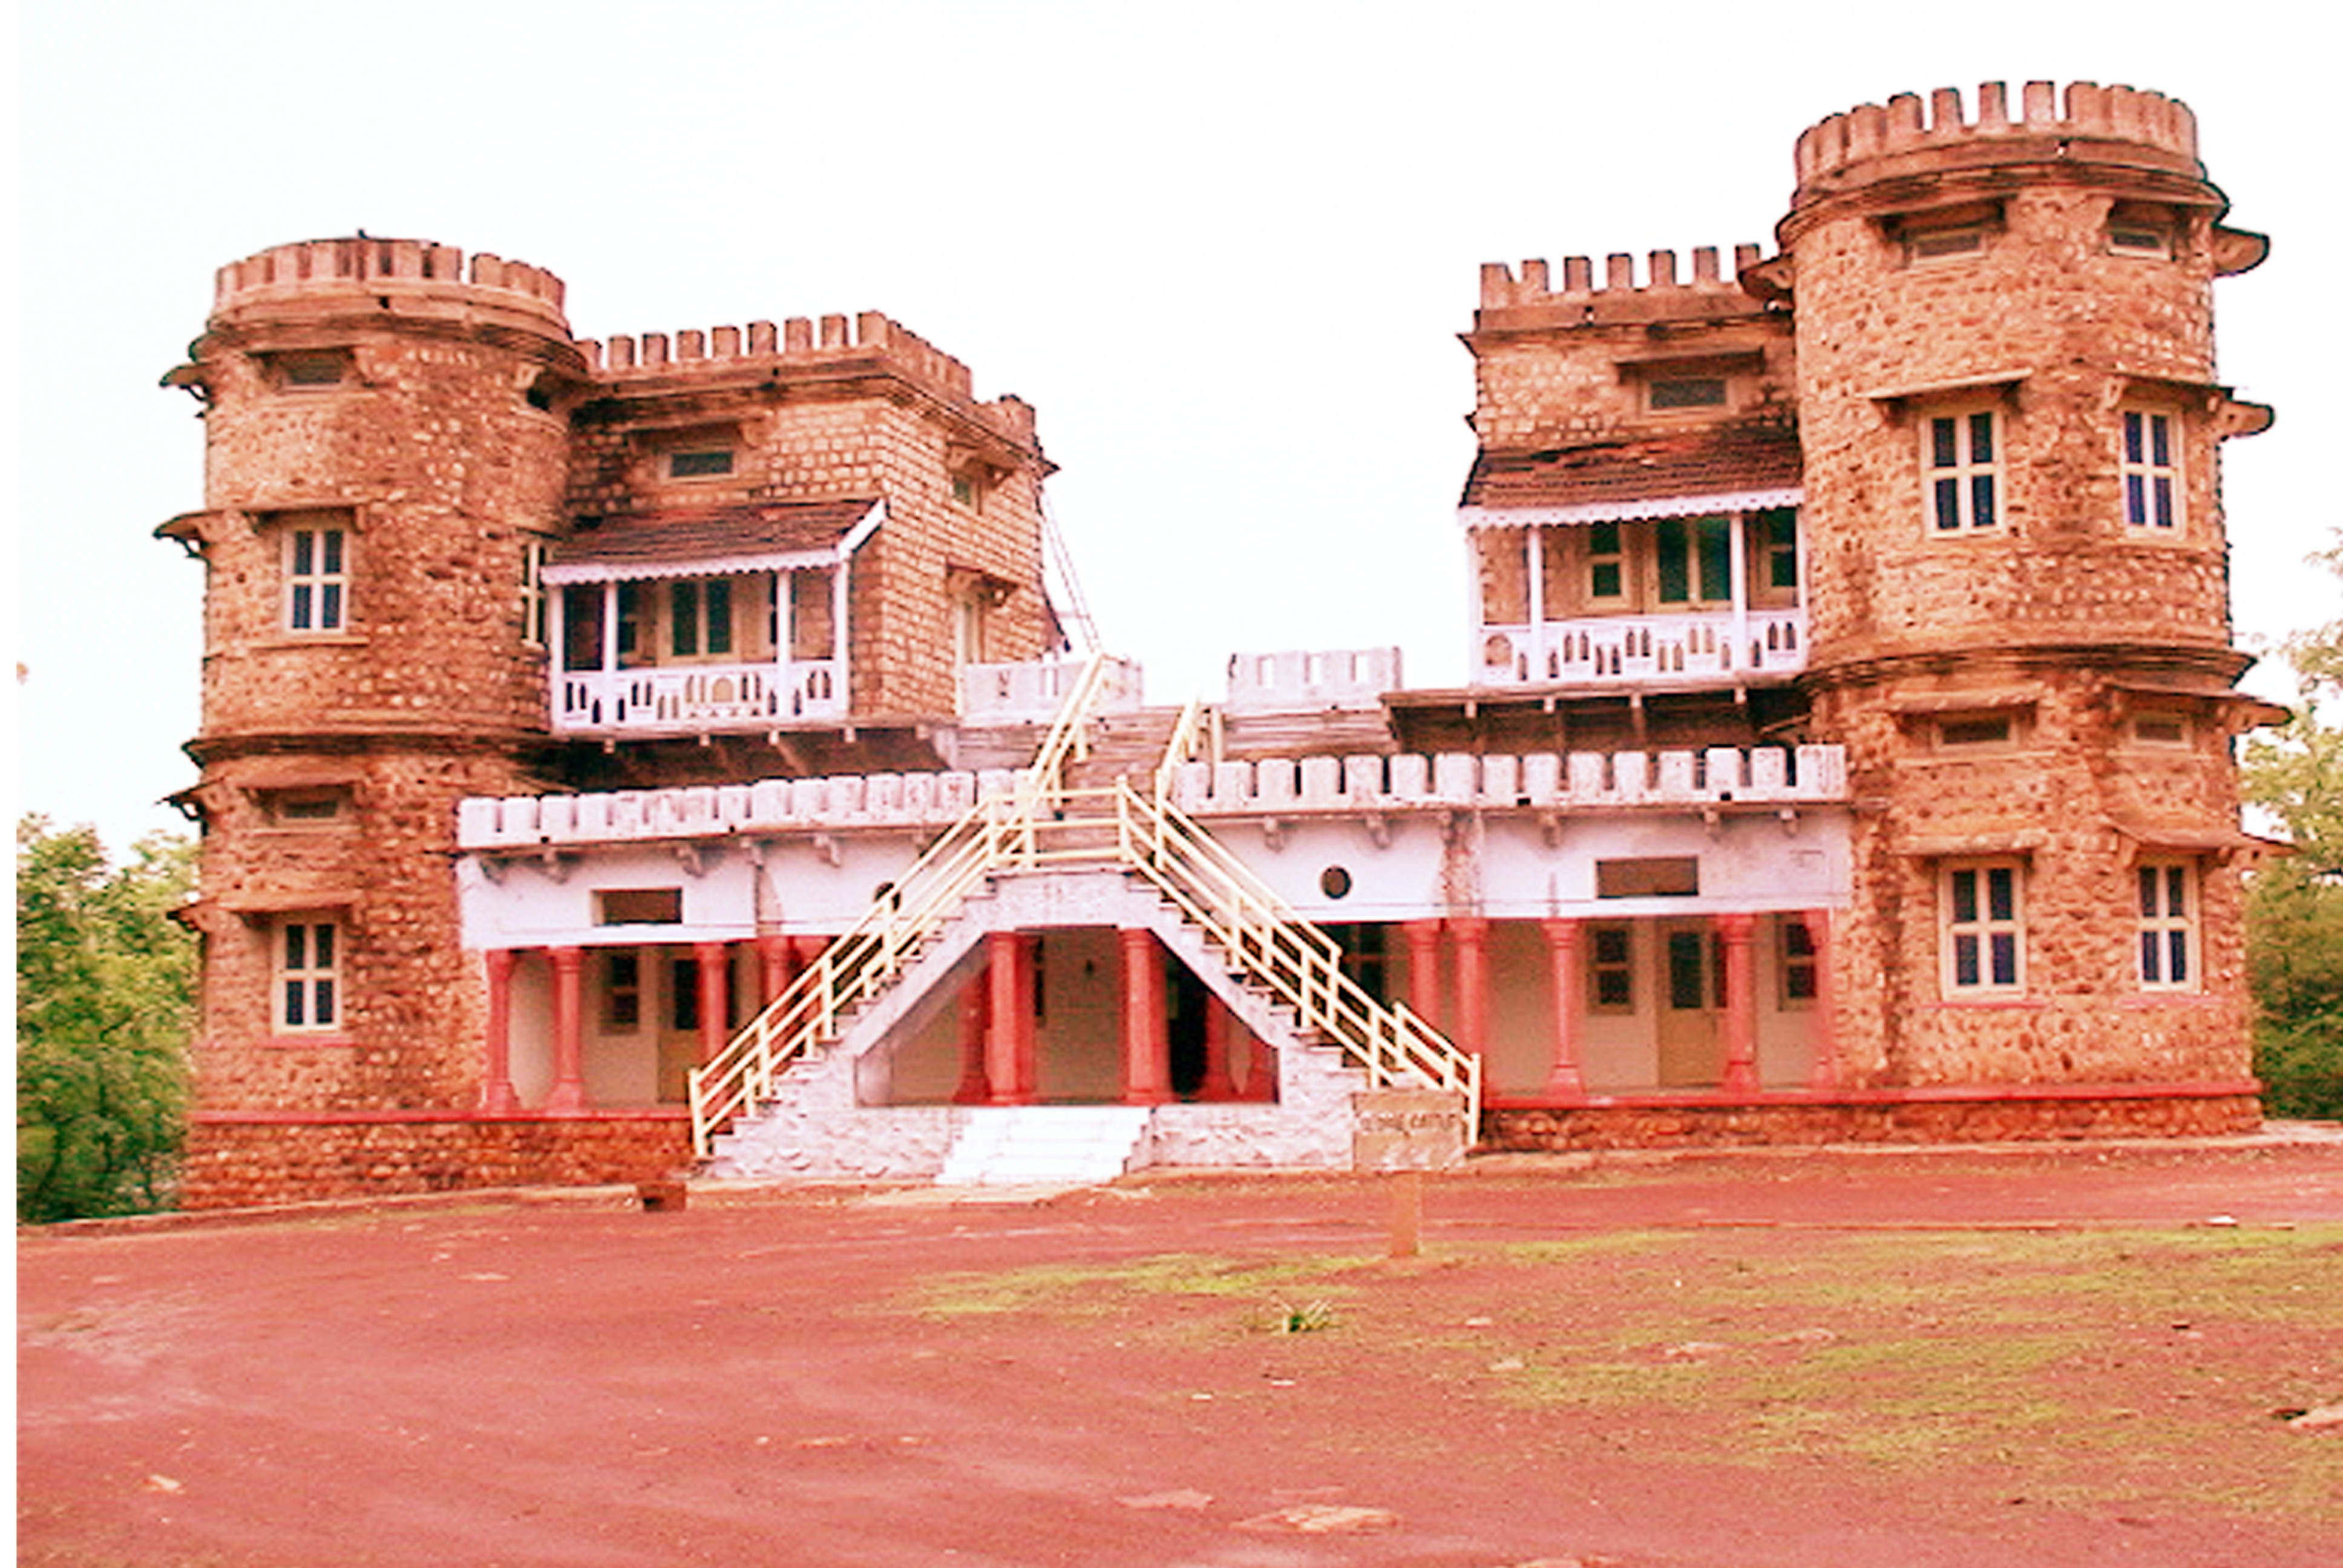 Madhav National Park Gwalior, Madhav National Park is situated in the central highland of India